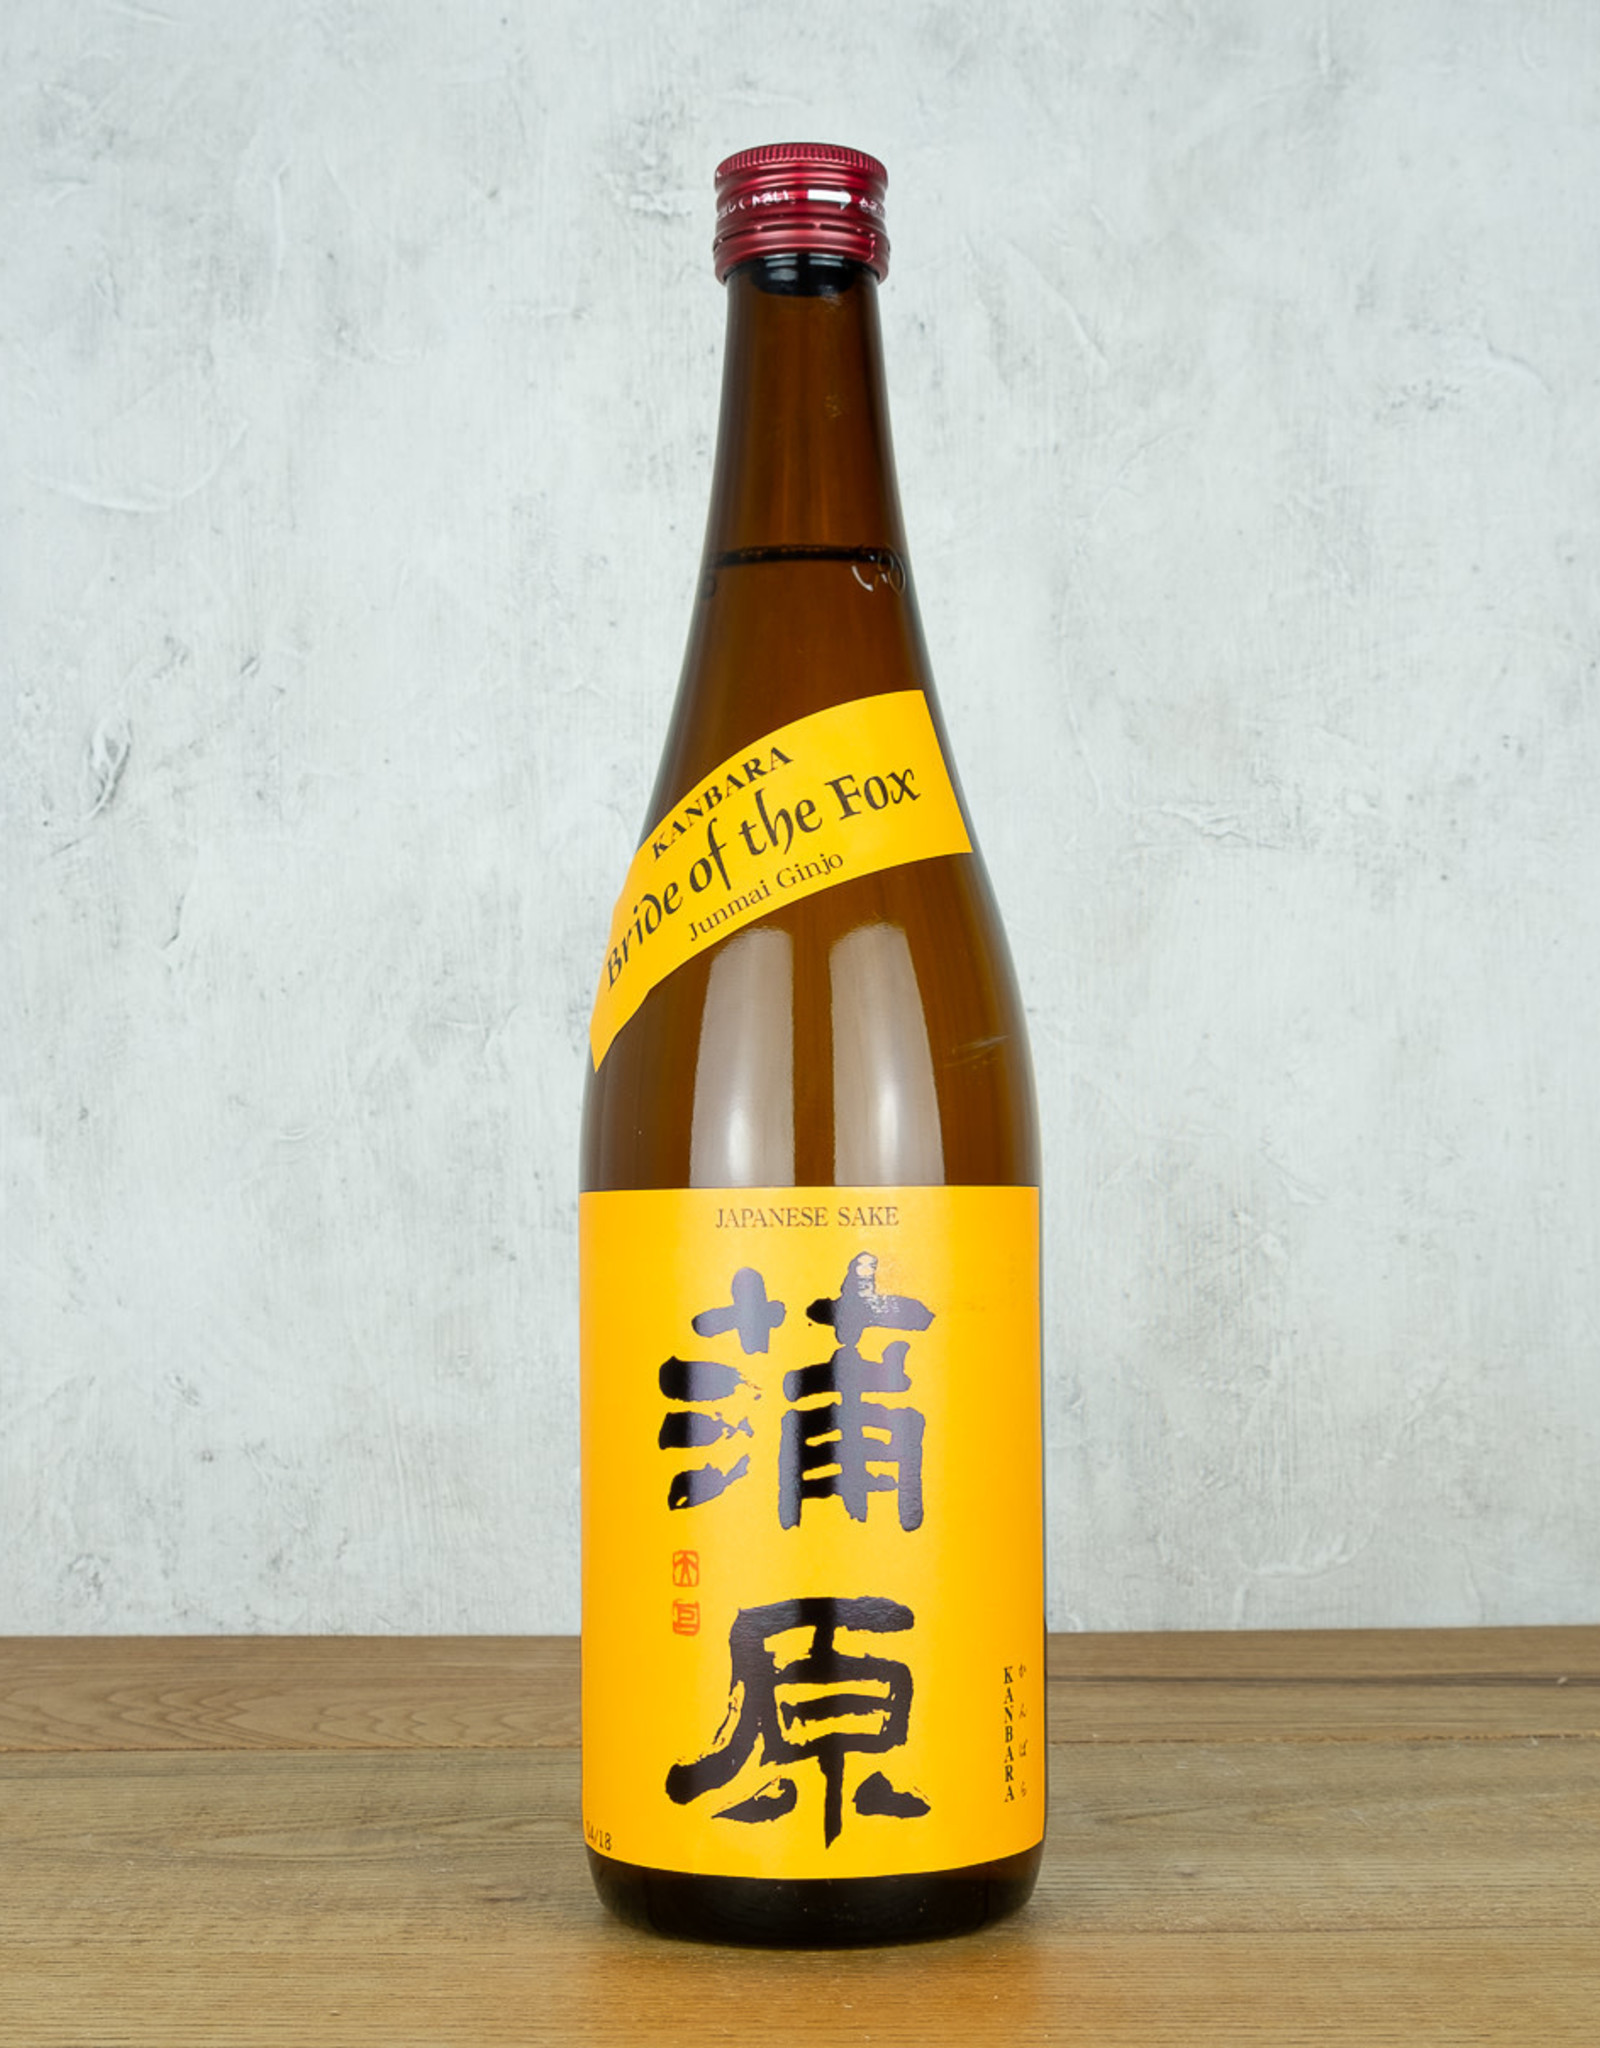 Kanbara Junmai Gino Sake Bride of the Fox